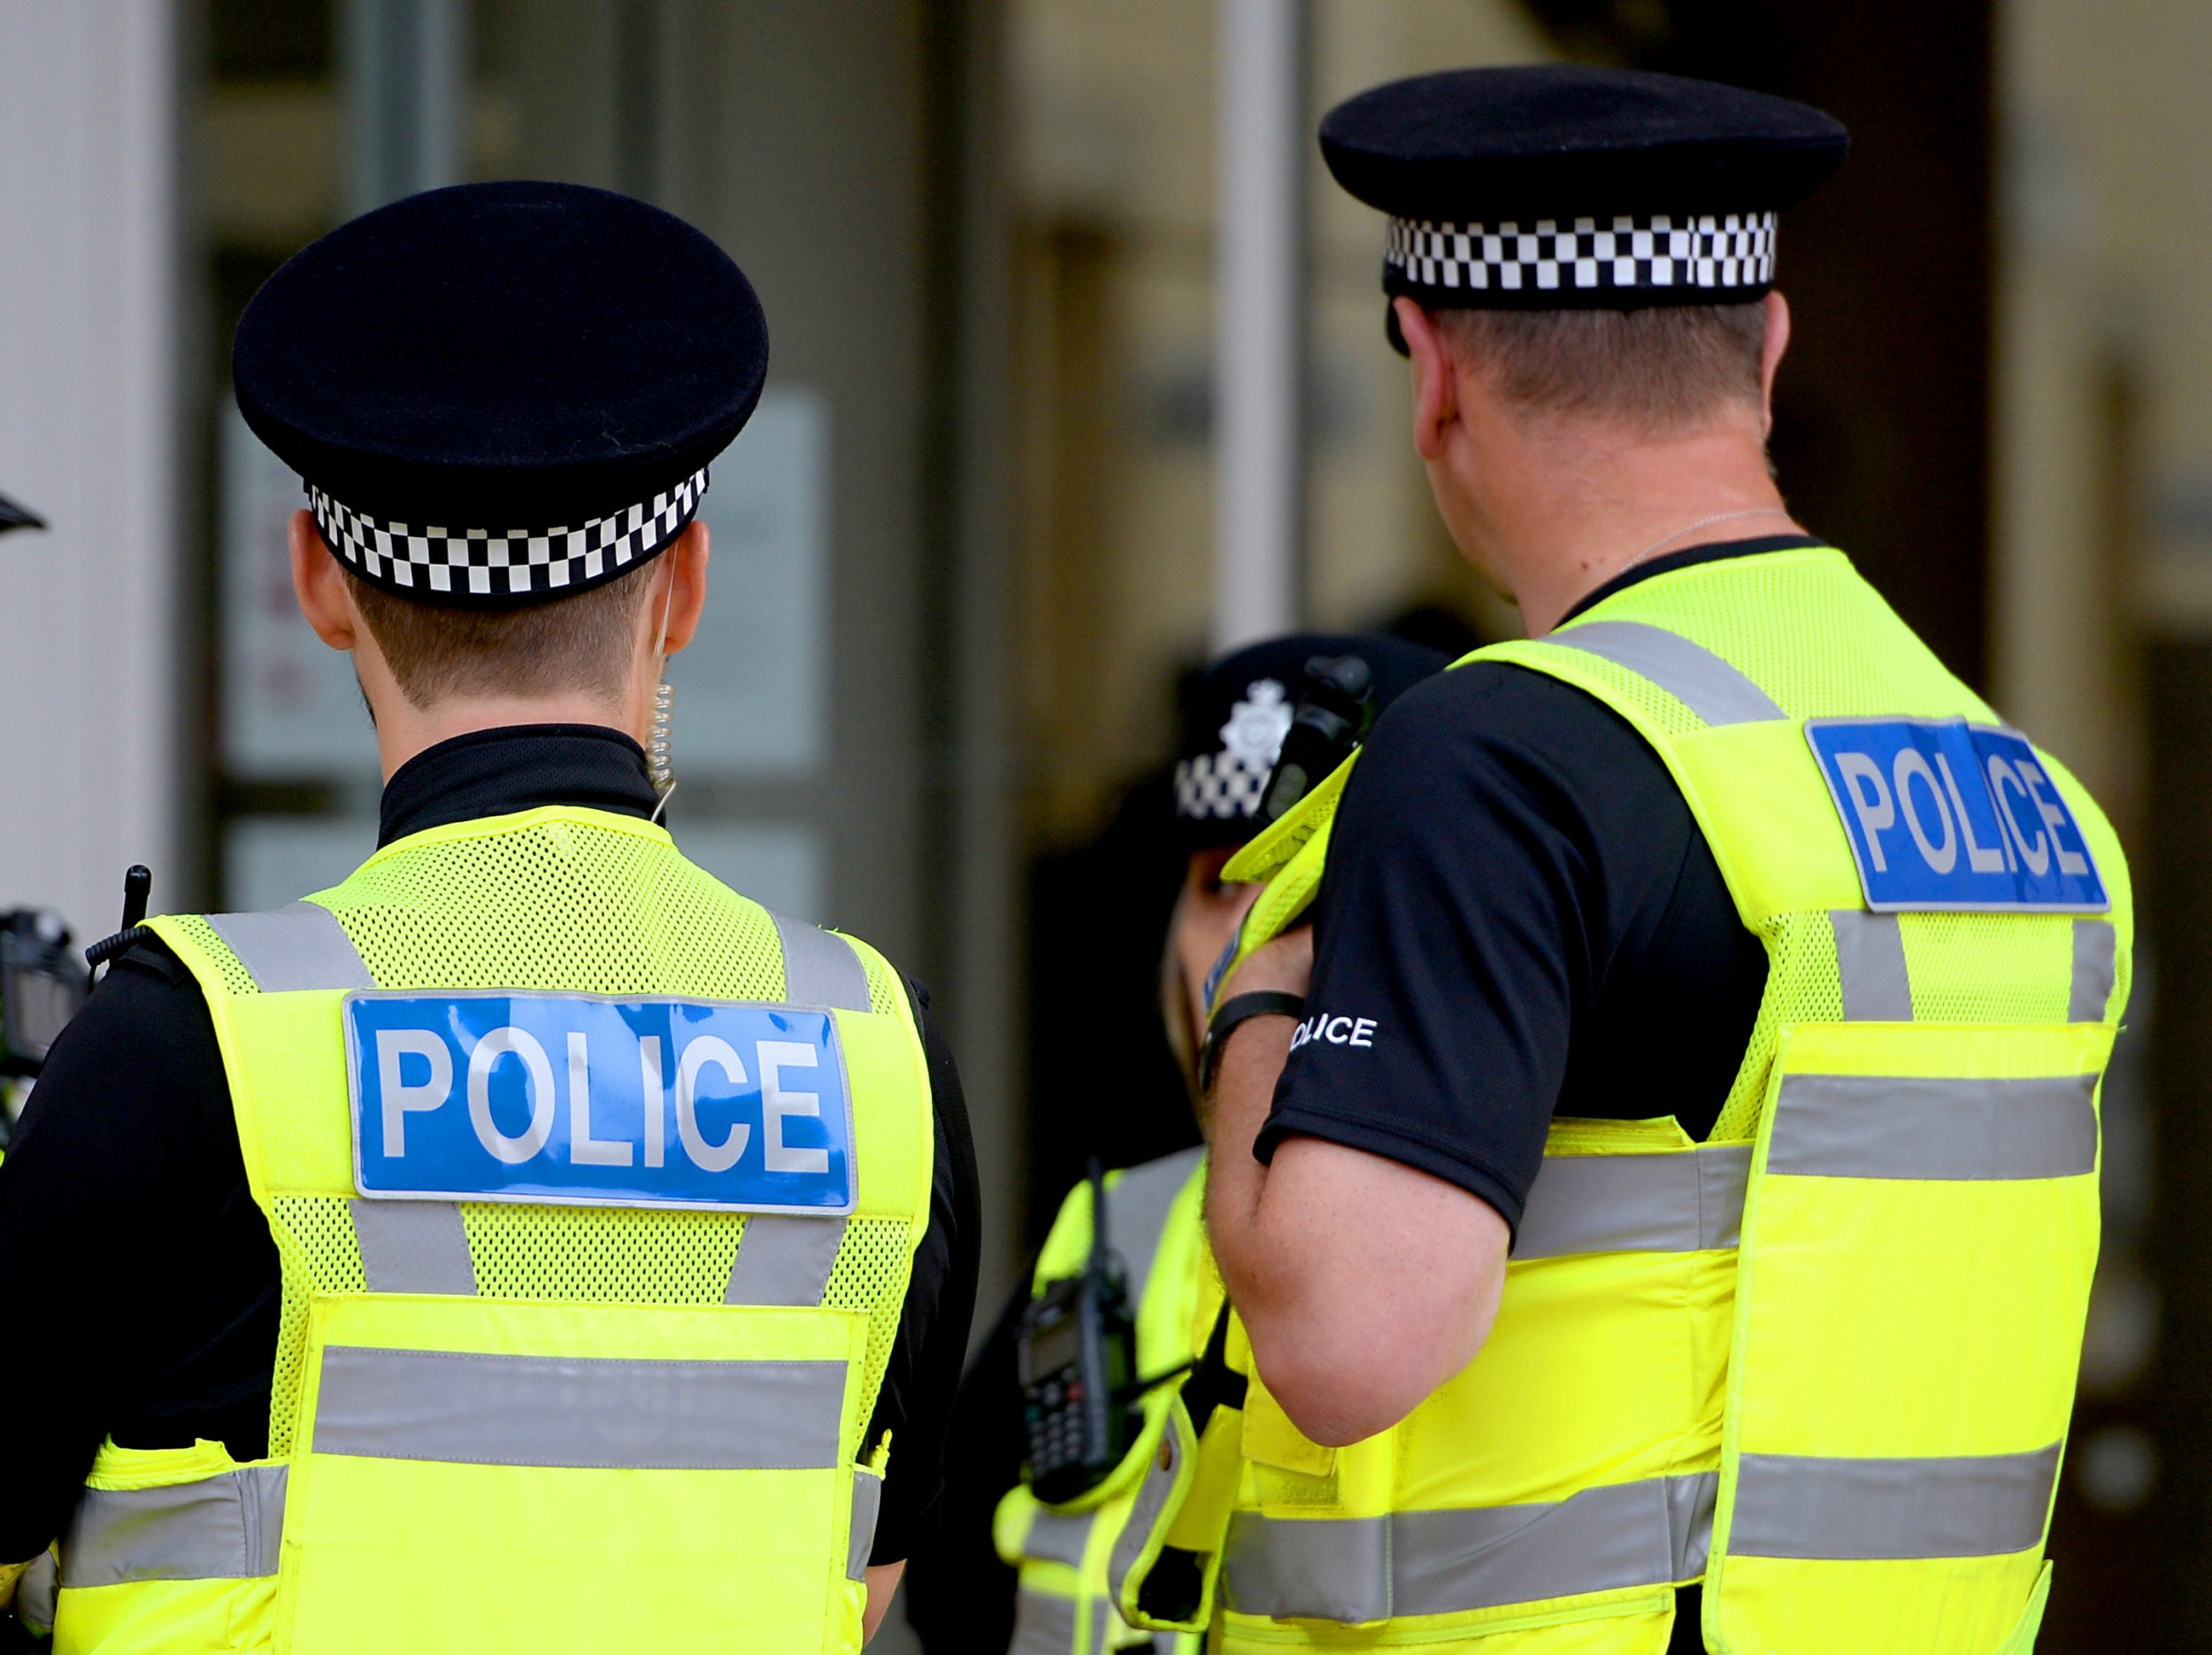 """Embargoed to 0001 Thursday October 25 File photo dated 15/09/16 of police officers. Policing is at risk of becoming """"irrelevant"""" as neighbourhood presences are stripped back and vast numbers of crimes go unsolved, a major new report warns. PRESS ASSOCIATION Photo. Issue date: Thursday October 25, 2018. See PA story POLITICS Police. Photo credit should read: Joe Giddens/PA Wire"""